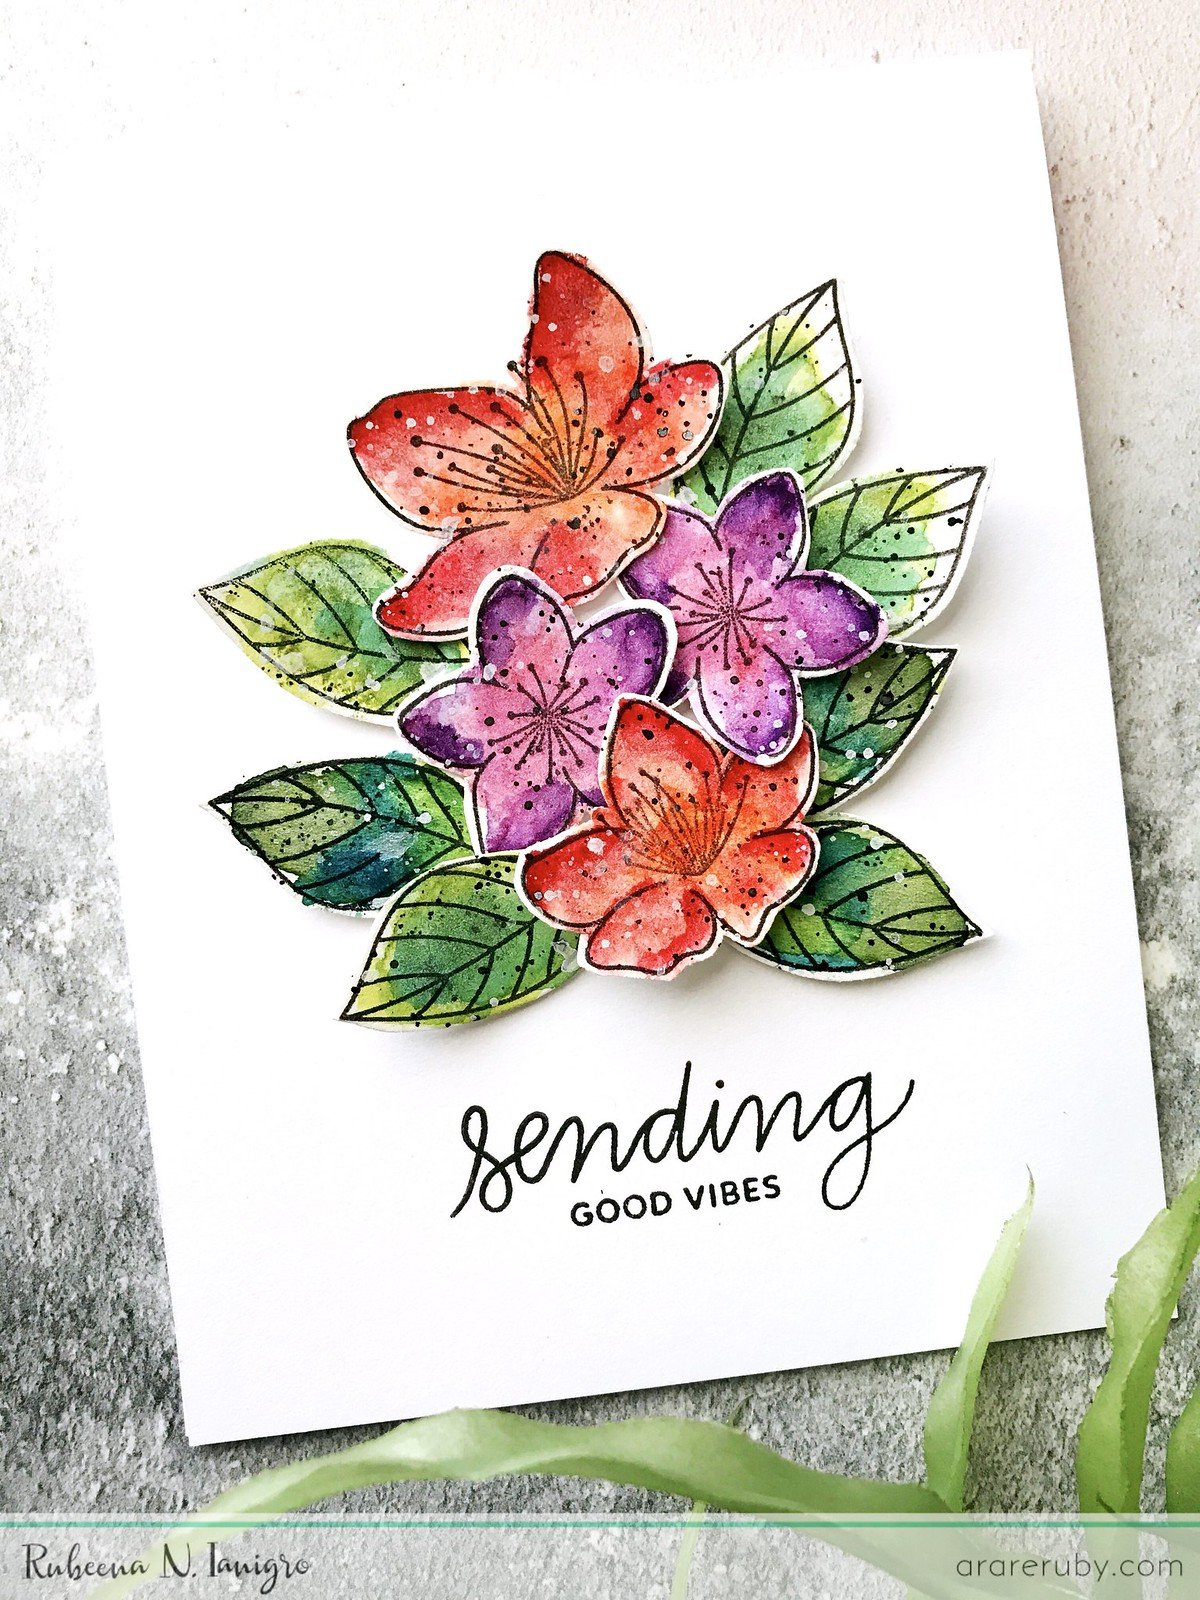 PPP March Blog Hop - Floral Card 2 - Rubeena Ianigro